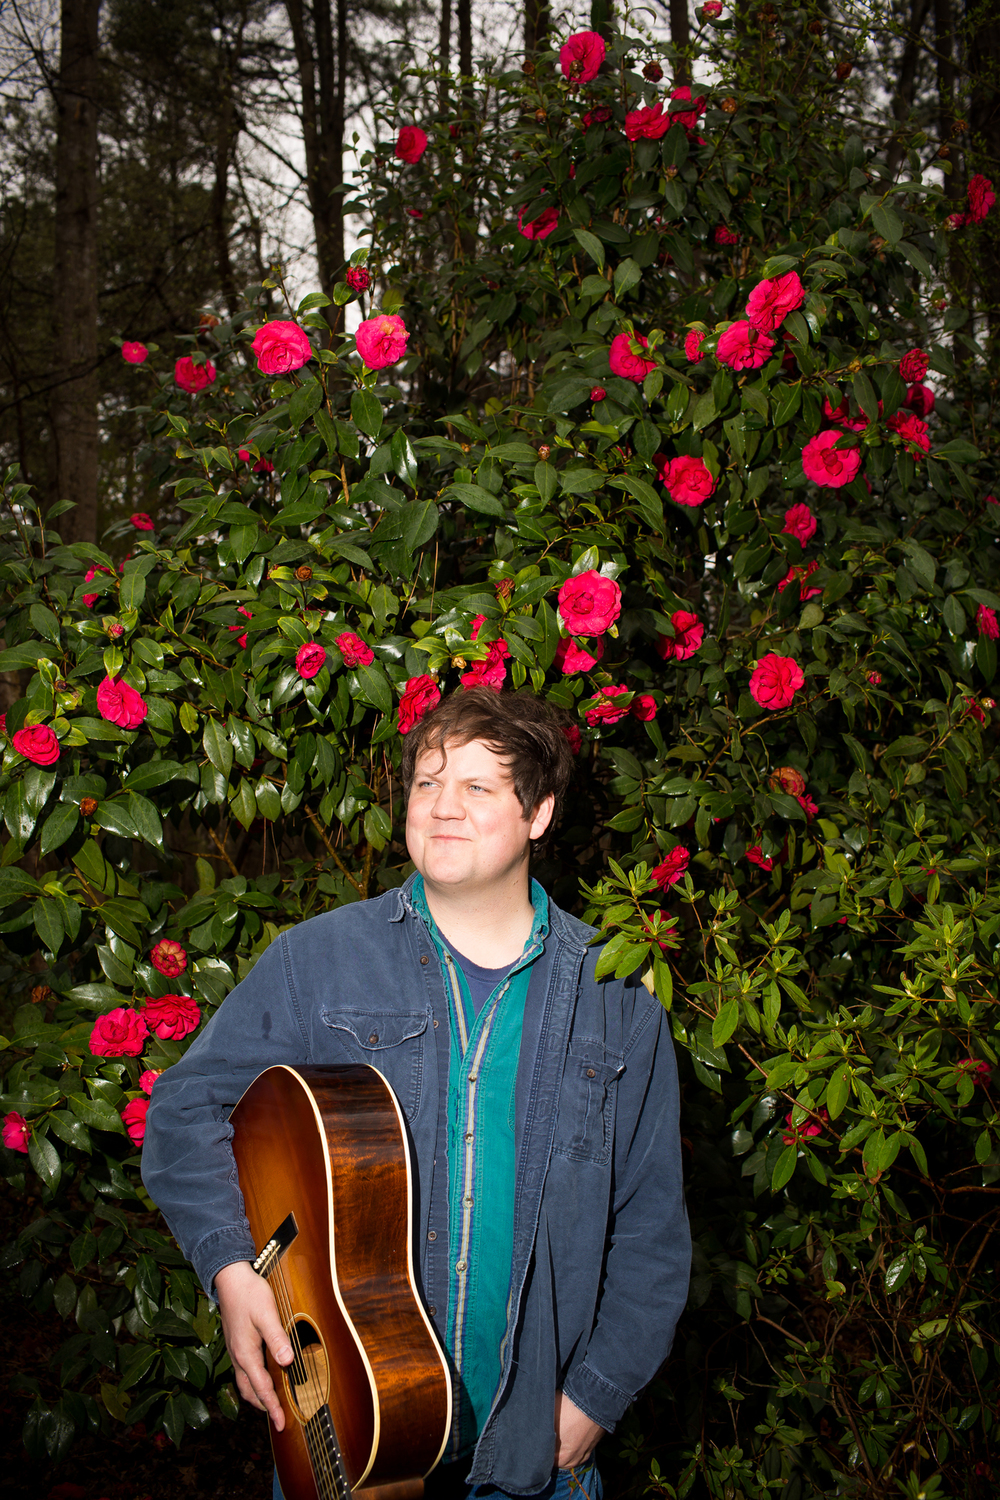 Folk musician Jake Xerxes Fussell in Durham, N.C. for INDY Week.